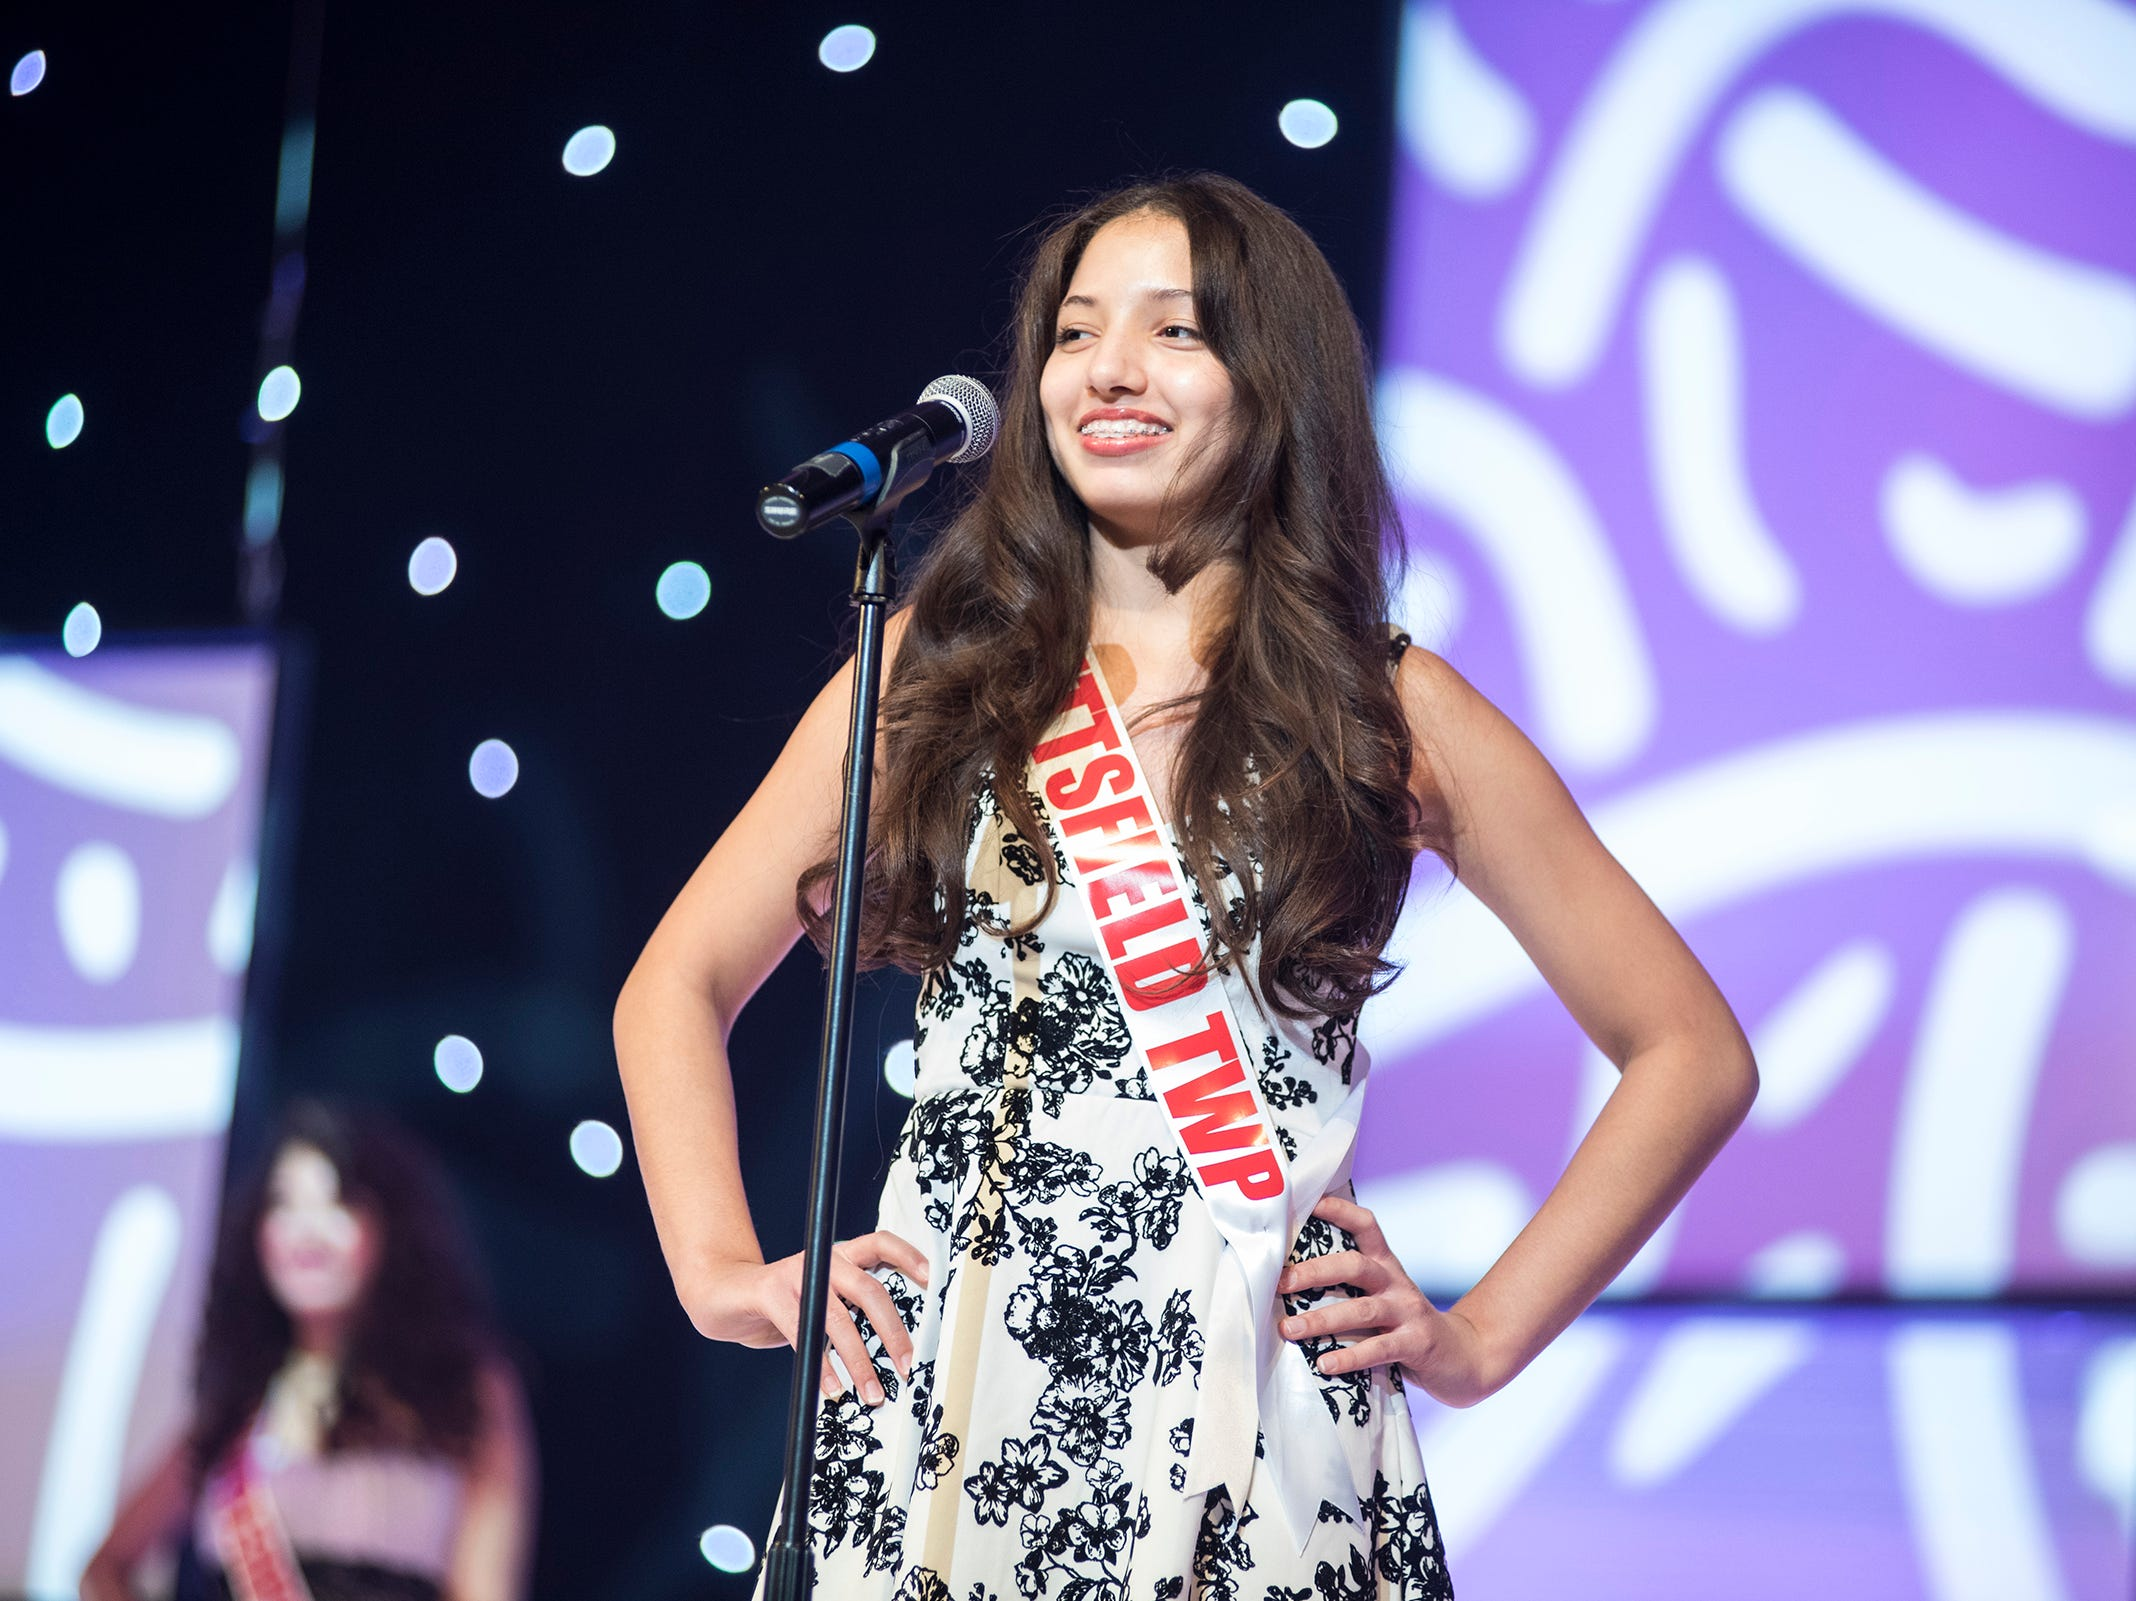 Miss Pittsfield Township Teen Rose Oliverio introduces herself Saturday, Sept. 22, 2018 at the start of the Miss Michigan Teen USA competition at McMorran Theater.